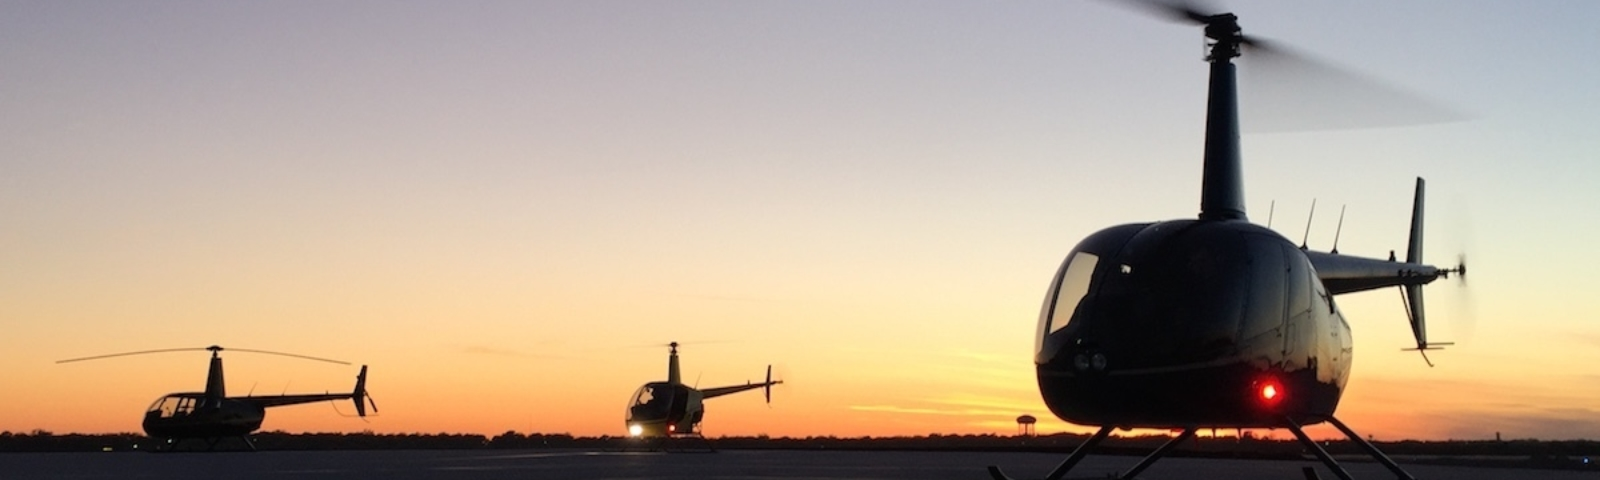 Sunset Helicopter Ride Dallas Fort Worth